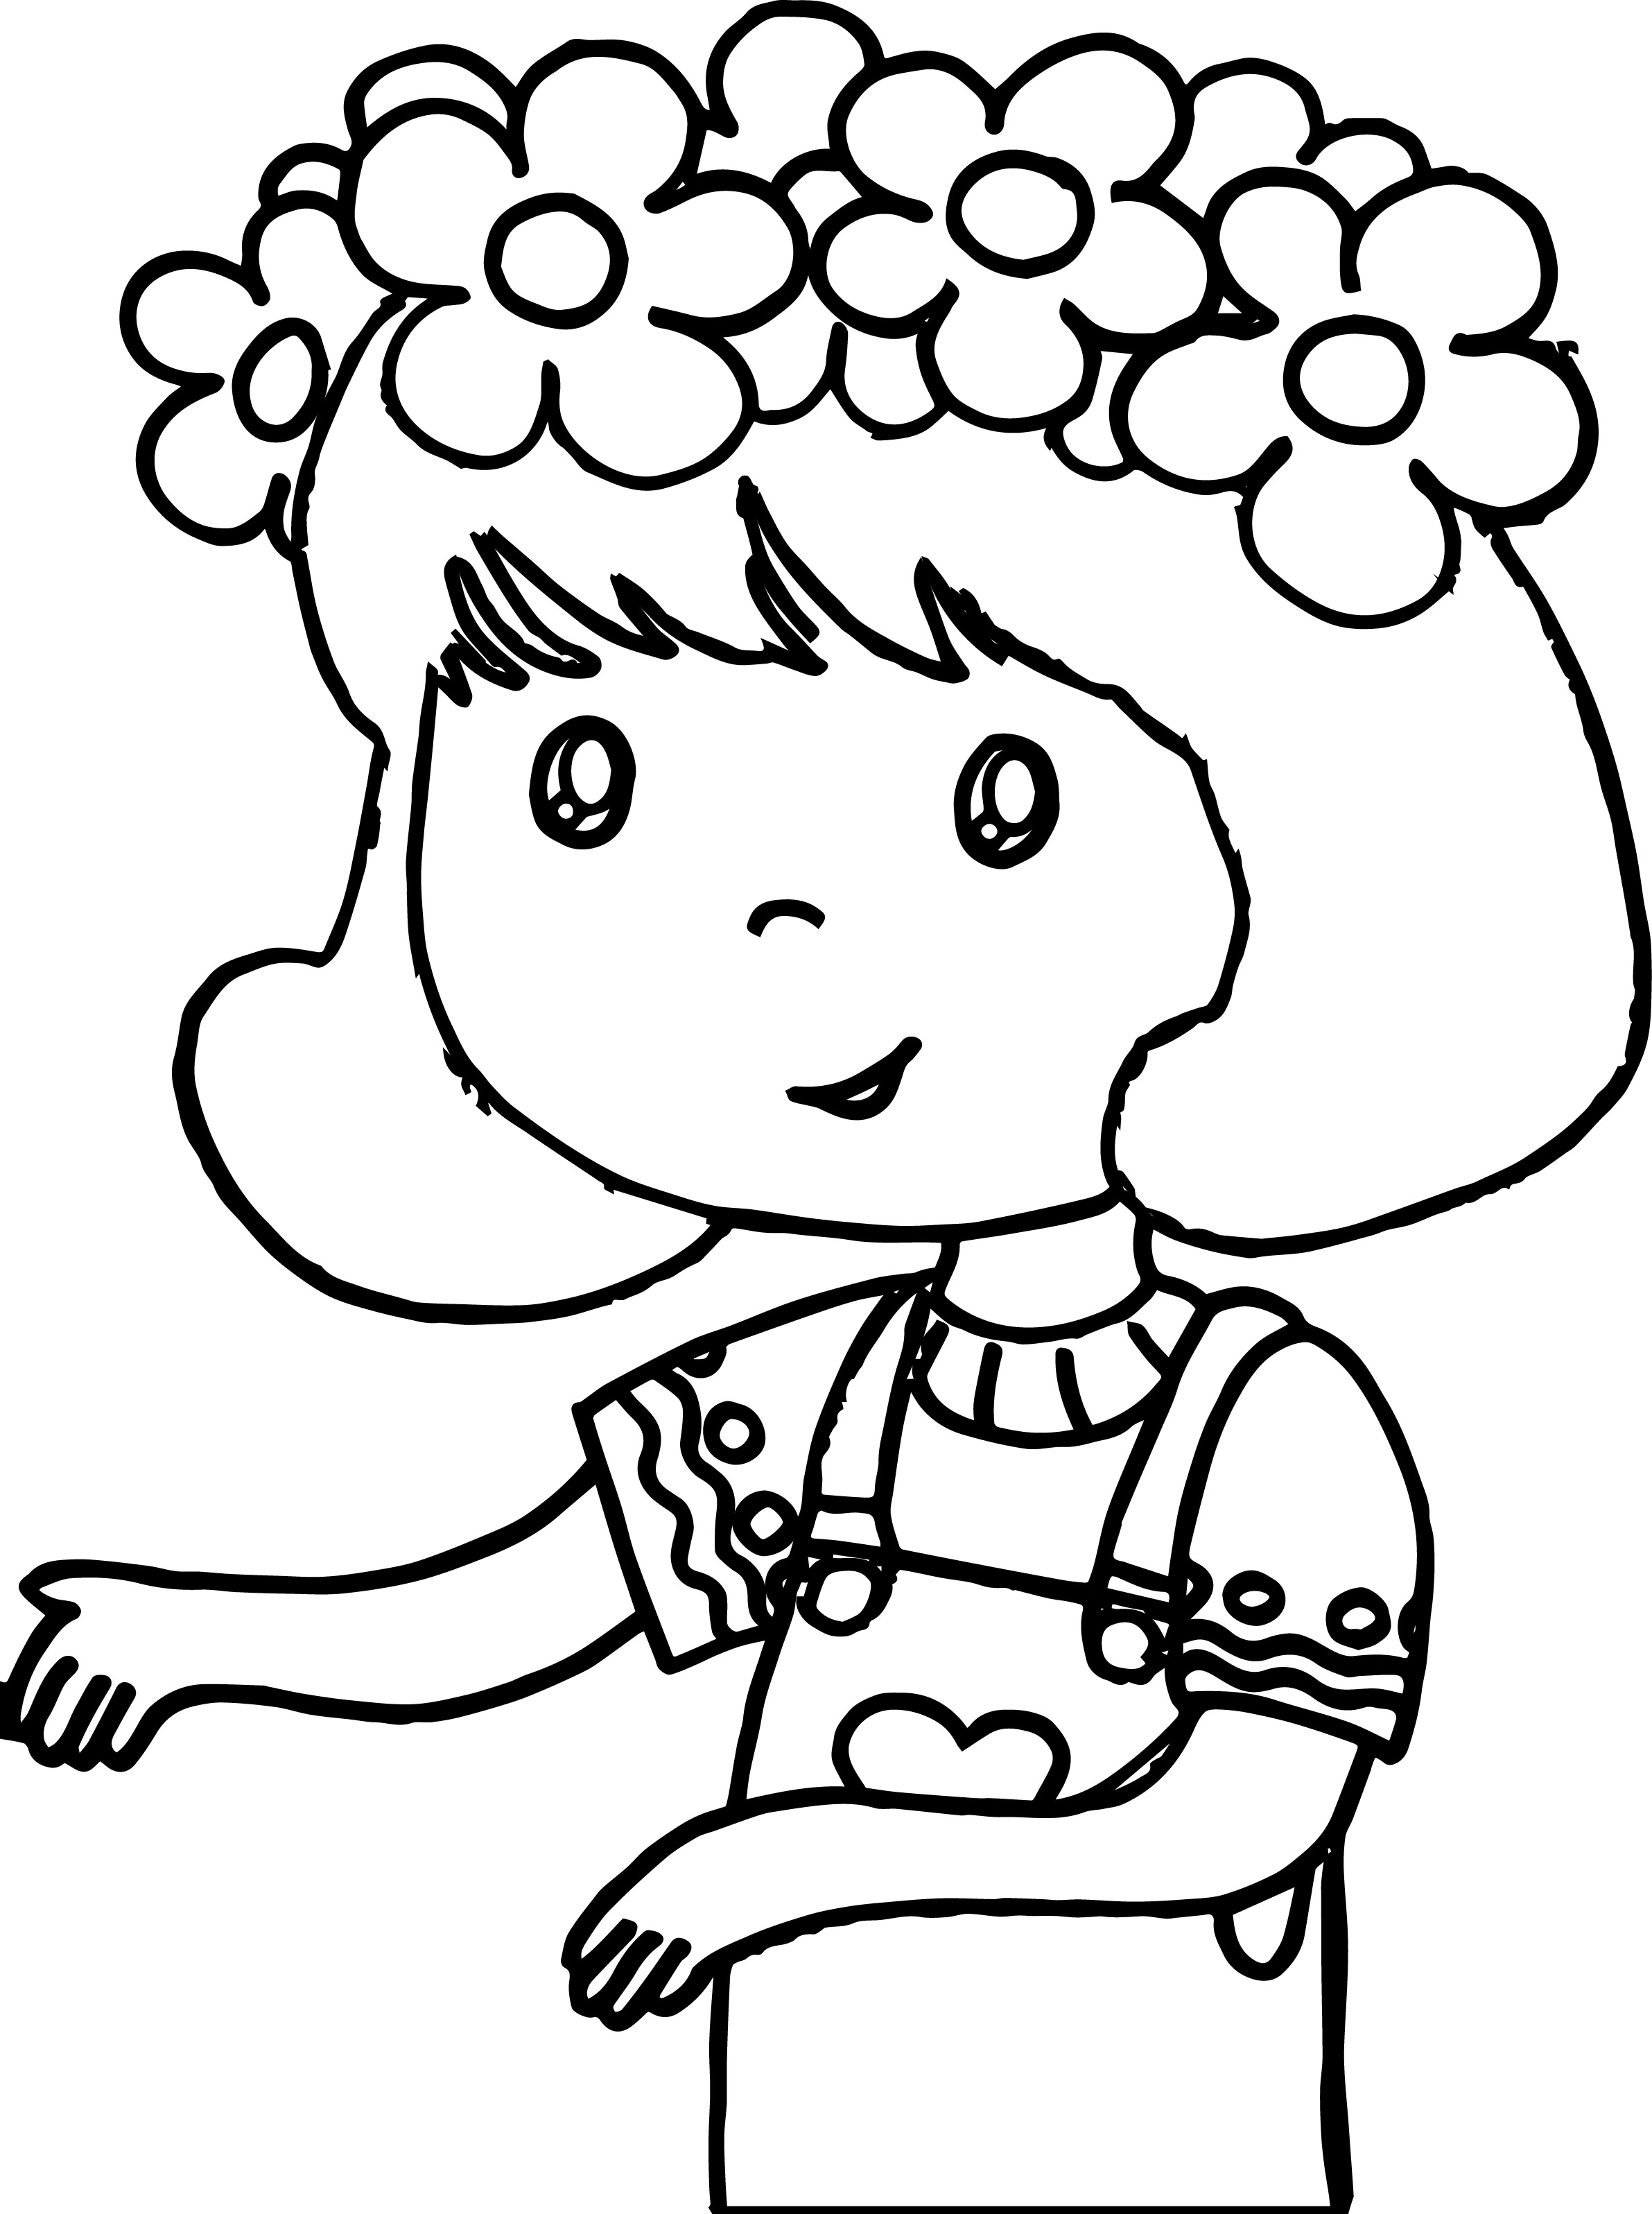 Uncategorized Amelia Bedelia Coloring Pages amelia bedelia coloring pages wecoloringpage pages